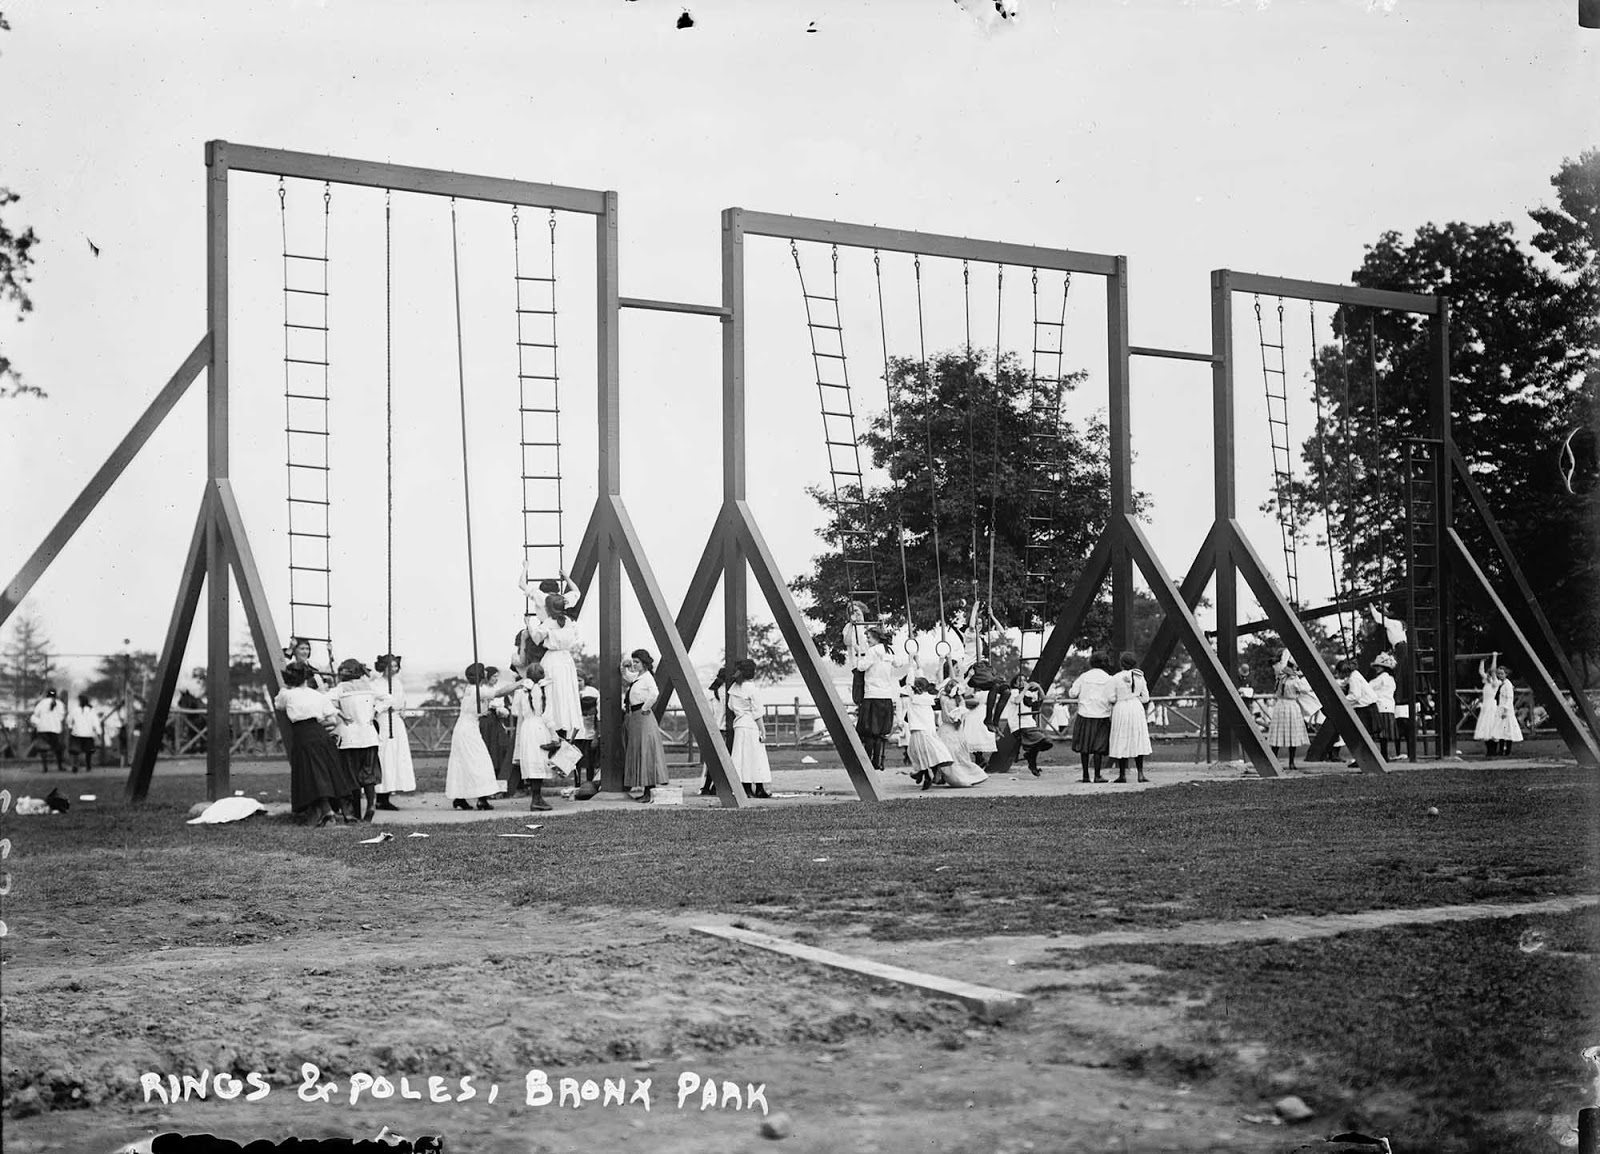 Rings and poles, Bronx Park, New York. 1911.